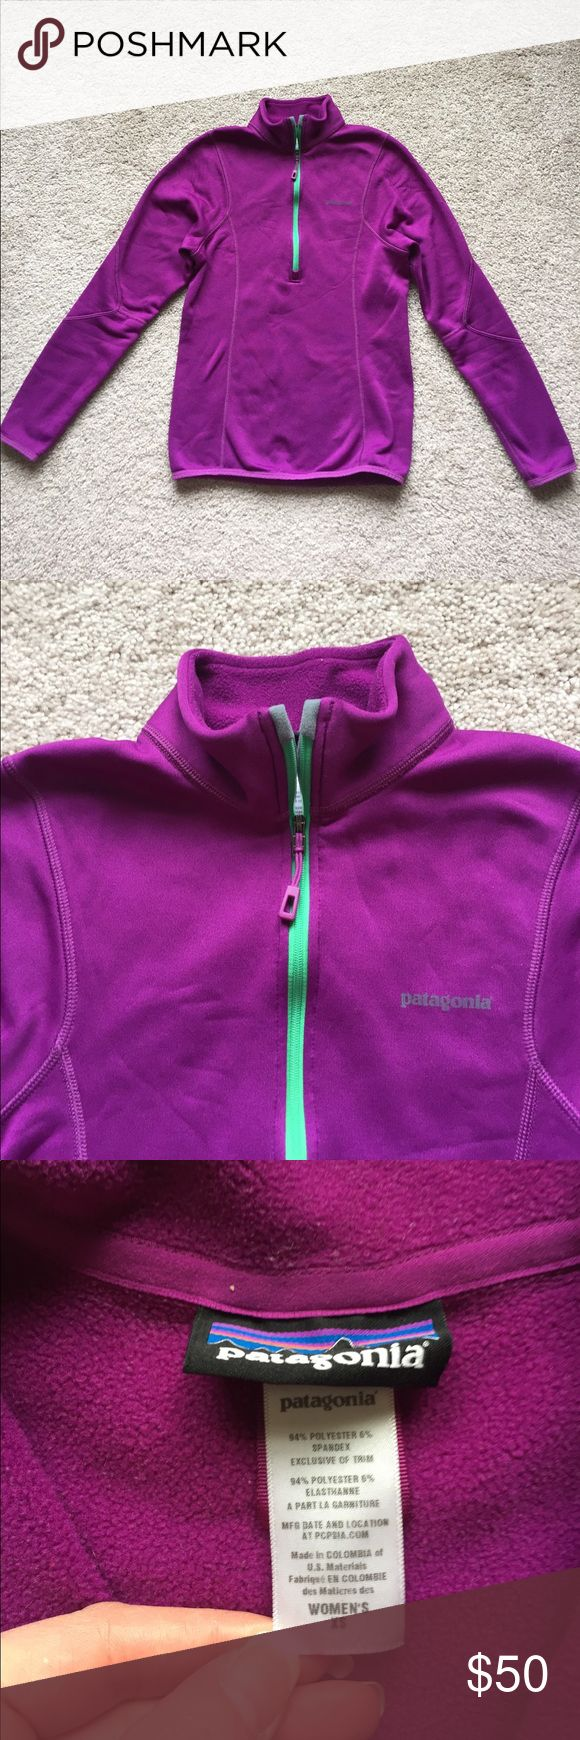 """Patagonia purple zip up fleece pullover xs Excellent condition bright purple 1/4 zip up with polar Tec fleece lining ! Bust measures 16""""and length is 22"""" Patagonia Tops Sweatshirts & Hoodies"""